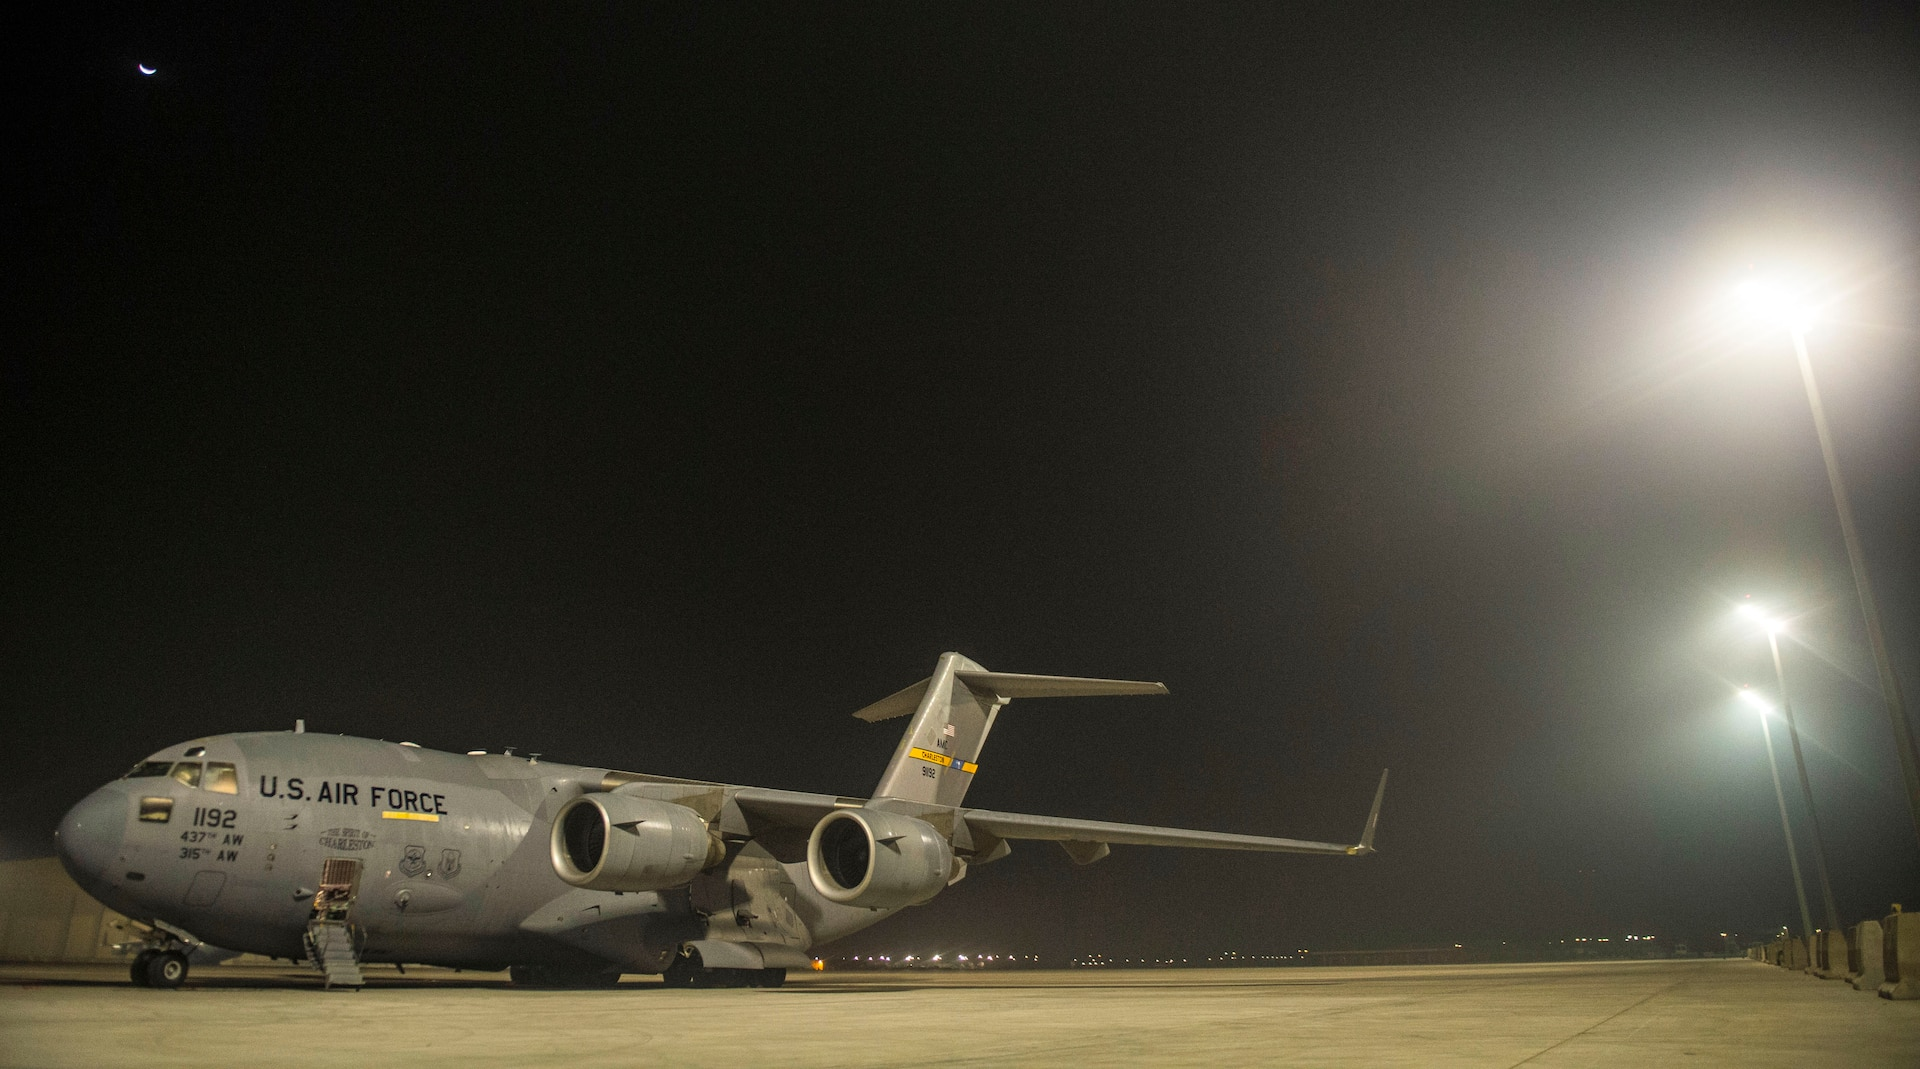 An 816th Expeditionary Airlift Squadron C-17 Globemaster III sits on the flightline in preparation for takeoff in support of Combined Joint Task Force - Operation Inherent Resolve Oct. 25, 2016. The 816th EAS delivered fire engines to Iraq. The squadron is actively engaged in tactical airlift operations supporting the Mosul offensive. (U.S. Air Force photo by Staff Sgt. Matthew B. Fredericks)